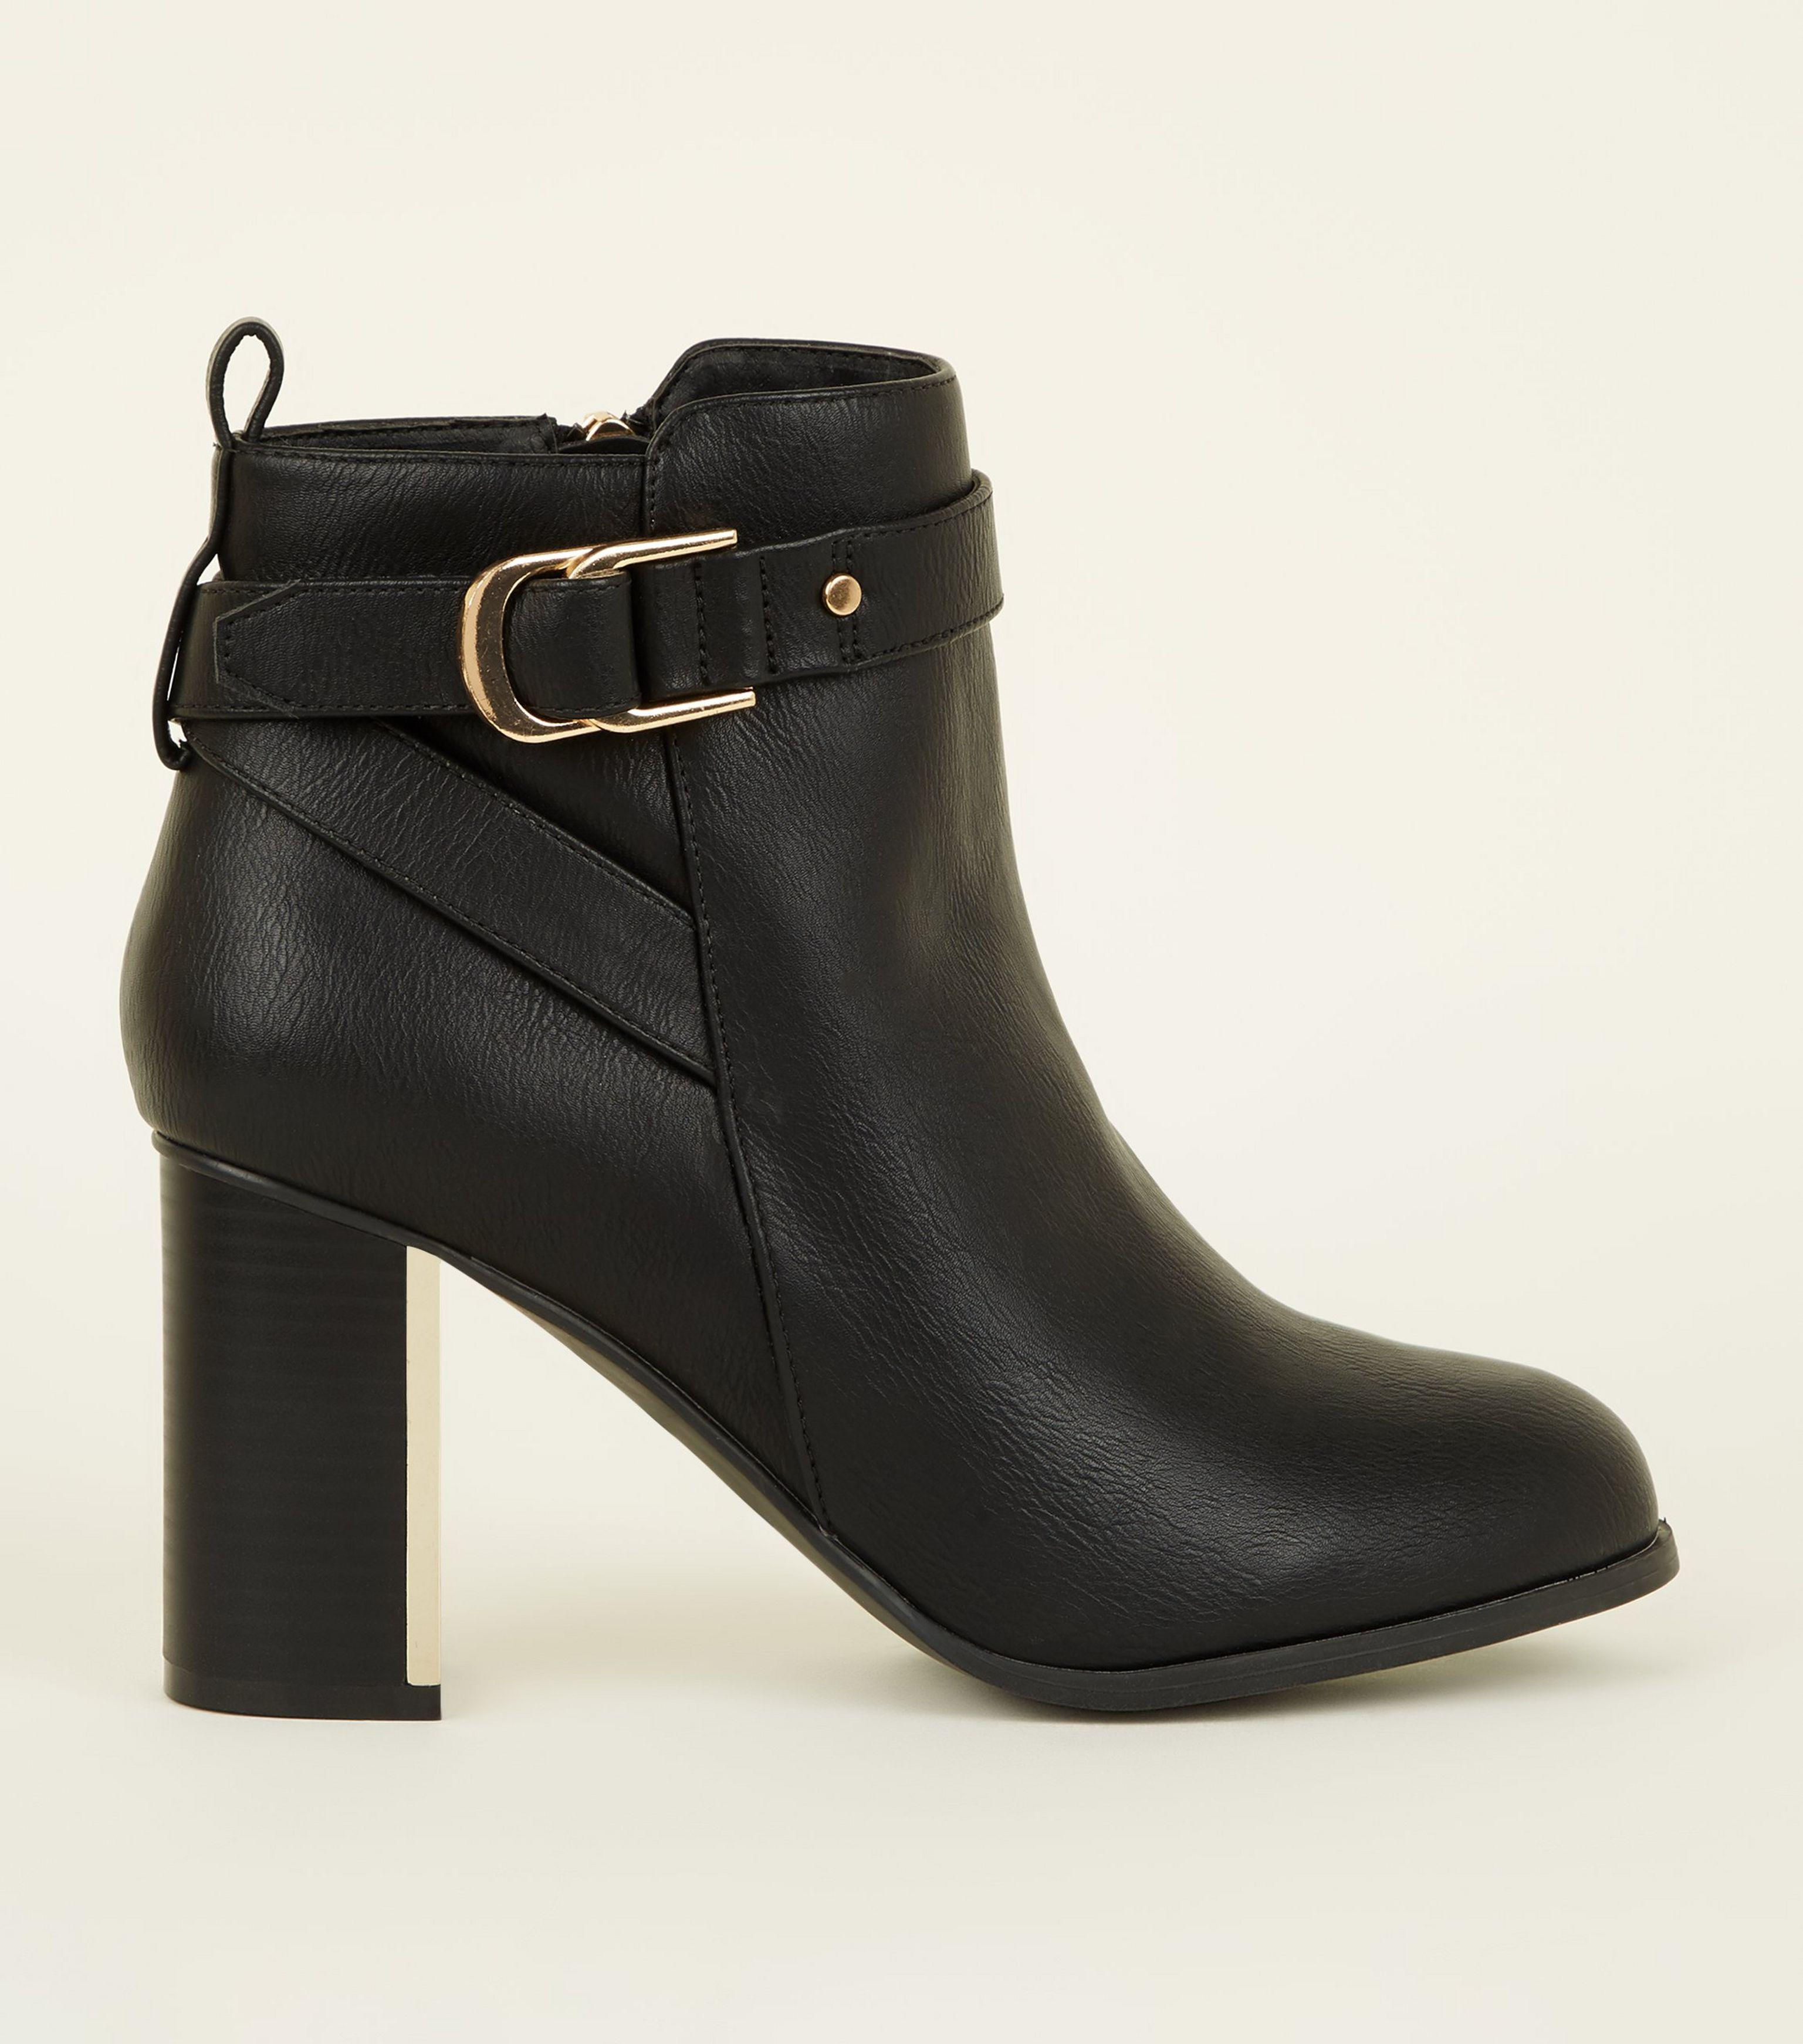 4248a2d728e1 New Look Wide Fit Black Metal Block Heel Ankle Boots in Black - Lyst